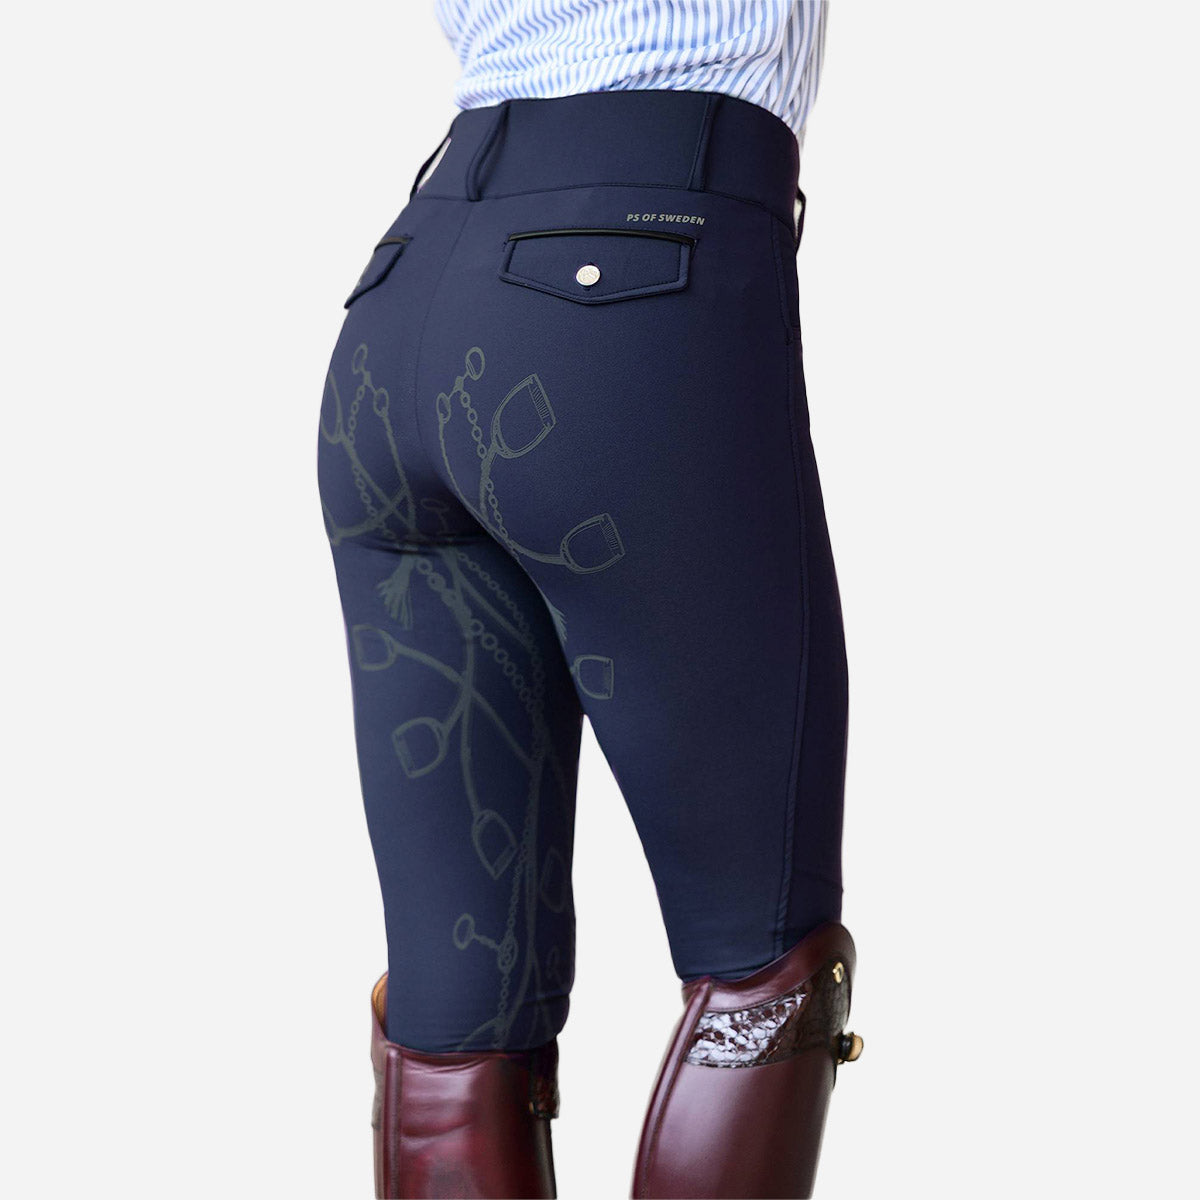 PS of Sweden Zoe FSS Breeches in Deep Sapphire